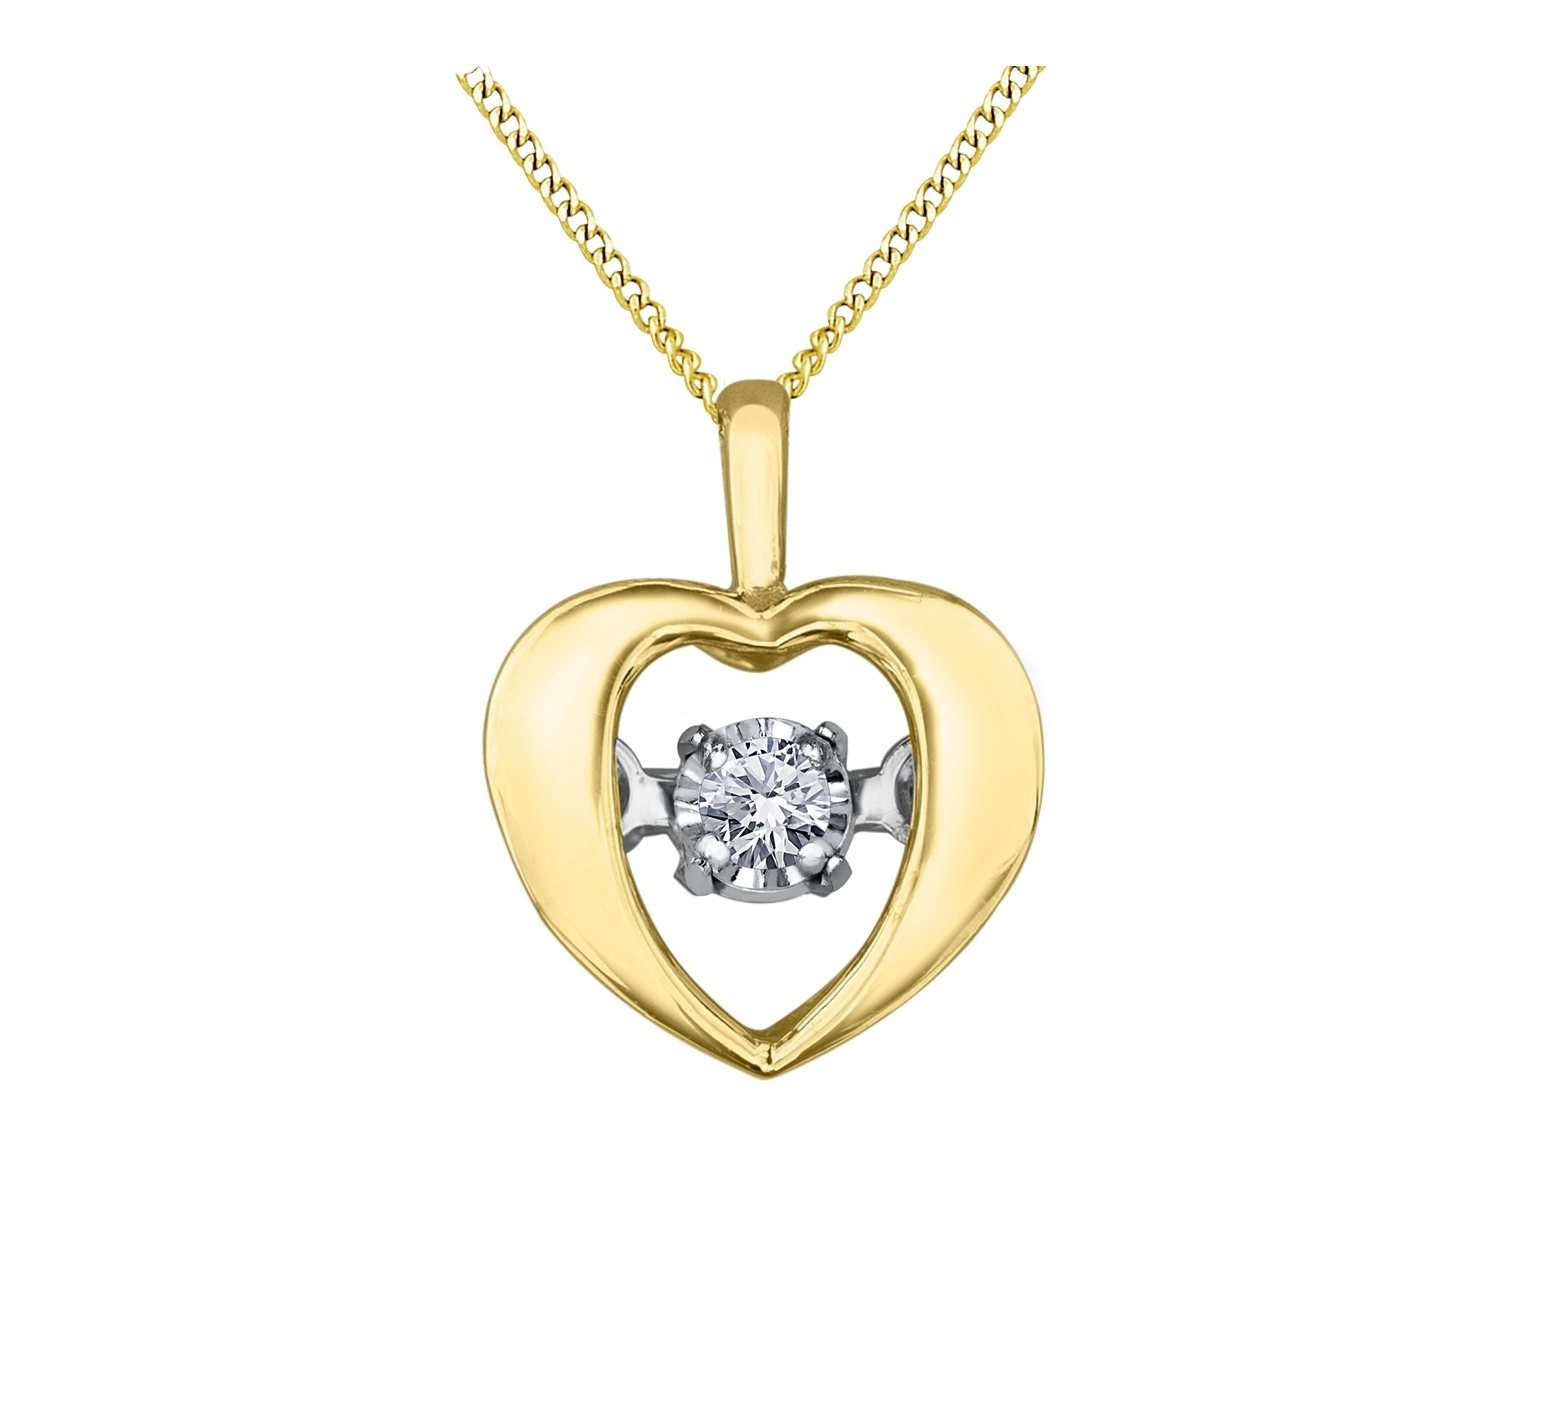 Heart pendant - 10K yellow Gold & Canadian diamond T.W. 0.04 Carat